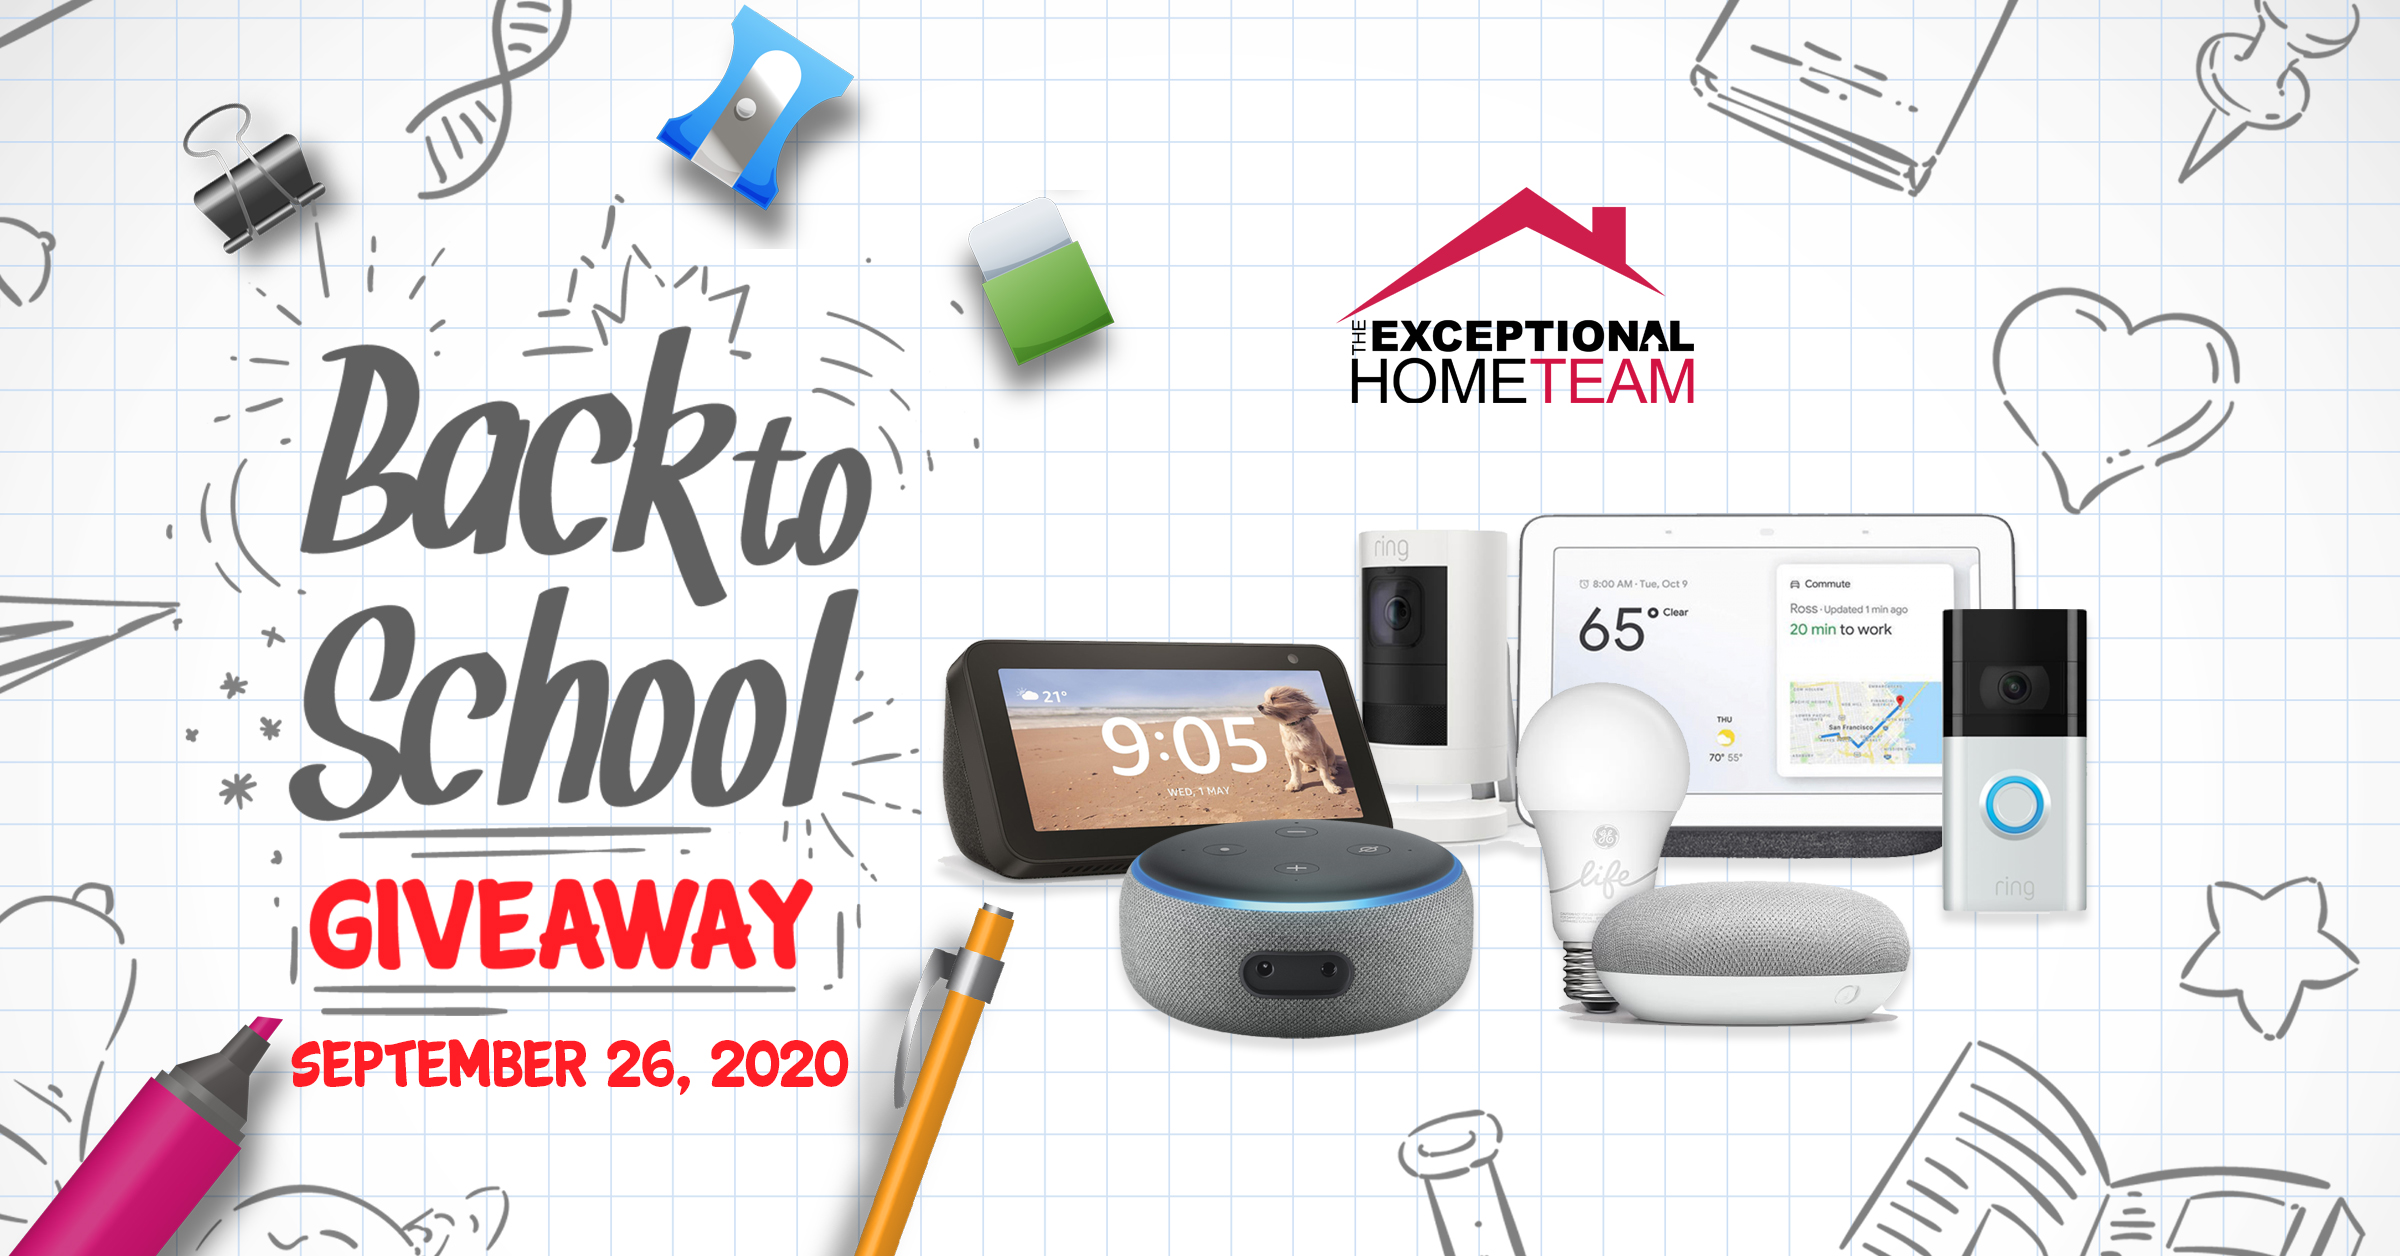 FB-Event-Page-Back-to-School-Giveaway